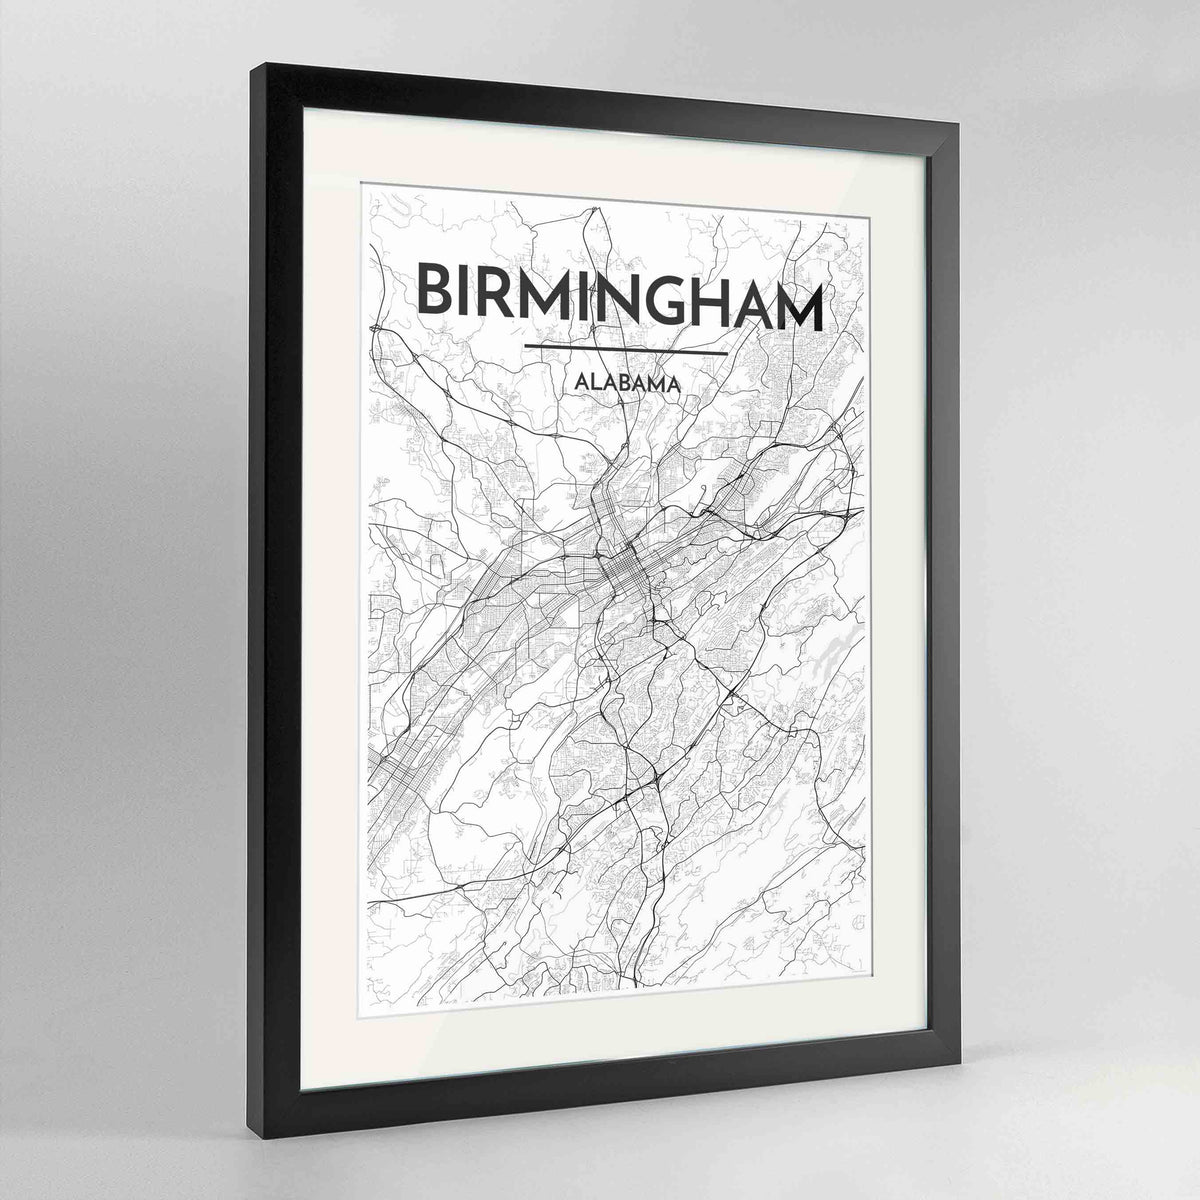 "Framed Birmingham - Alabama Map Art Print 24x36"" Contemporary Black frame Point Two Design Group"